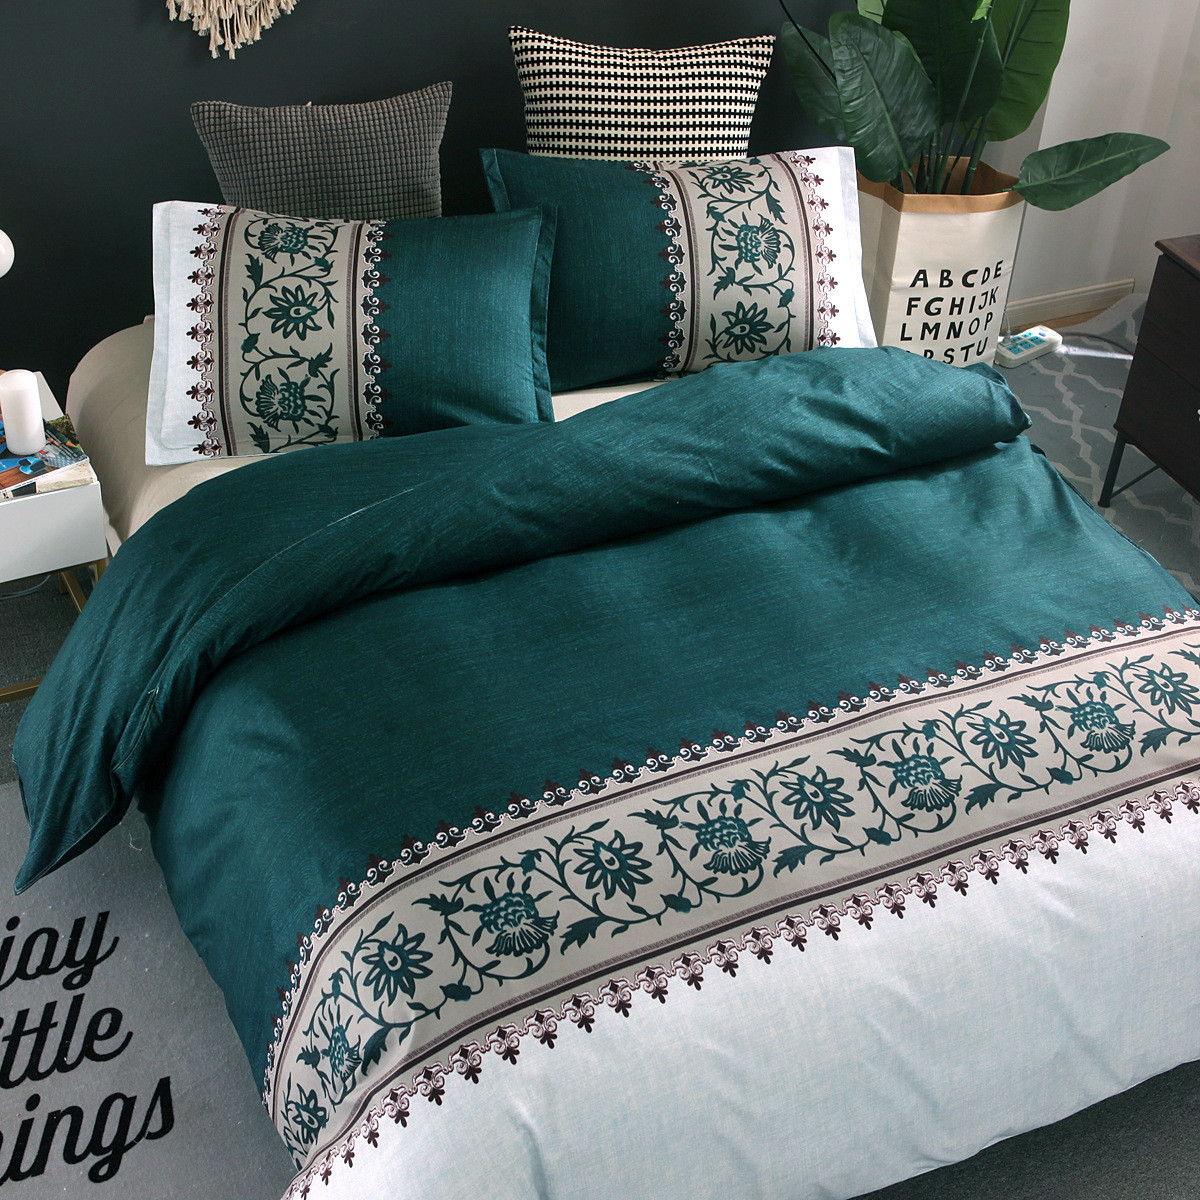 3 Colors Flower Printed Bedding Sets 6 Size Single Double Full Queen King Duvet Cover Set